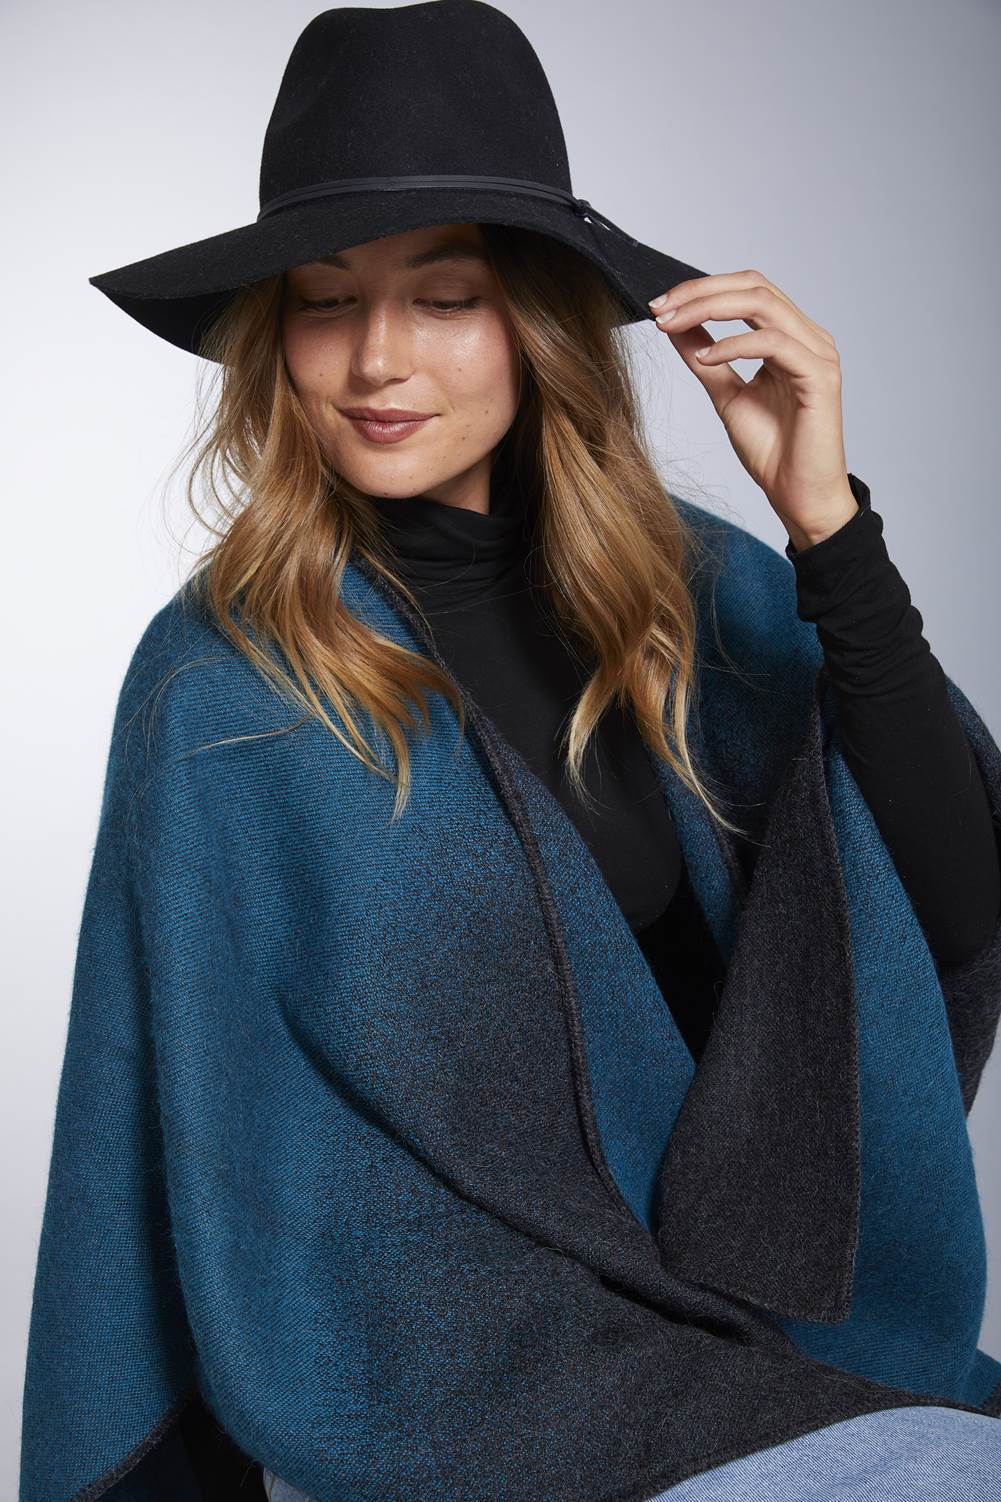 Manos del Peru Alpaca Poncho or Ruana Blue Twilight Reversible Baby Alpaca Wool Poncho Ruana for Women